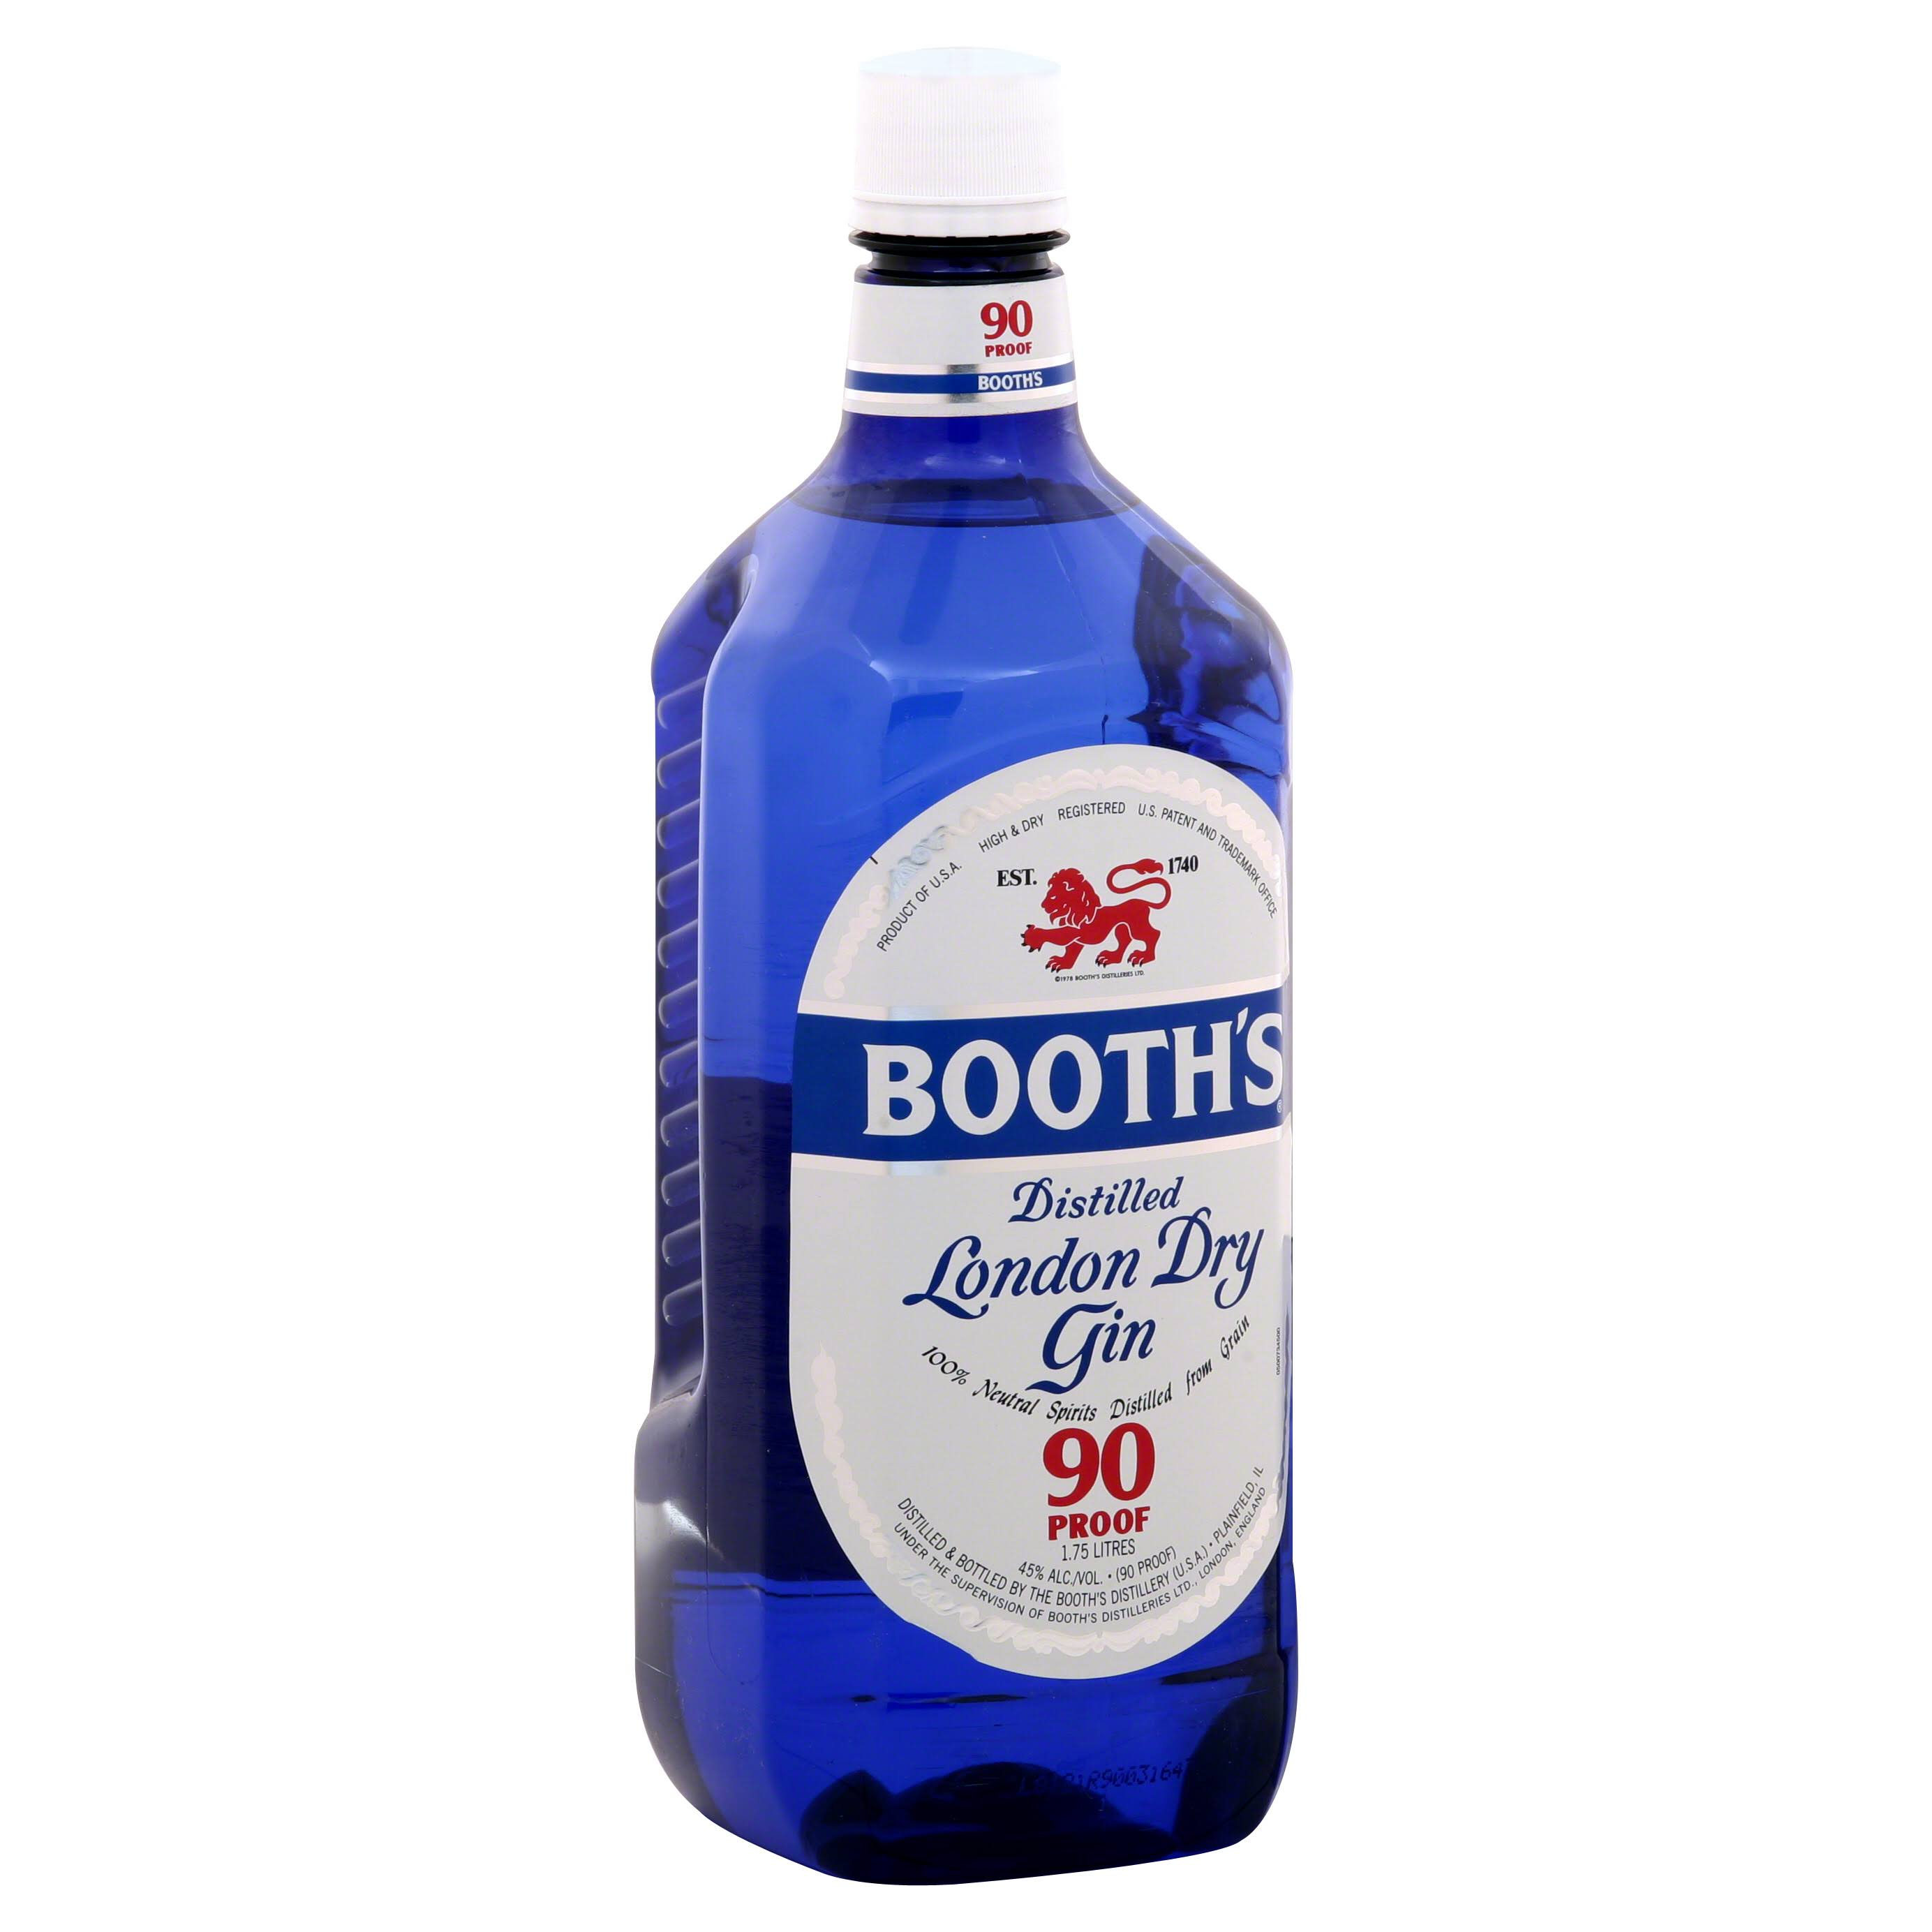 Booth's Distilled London Dry Gin